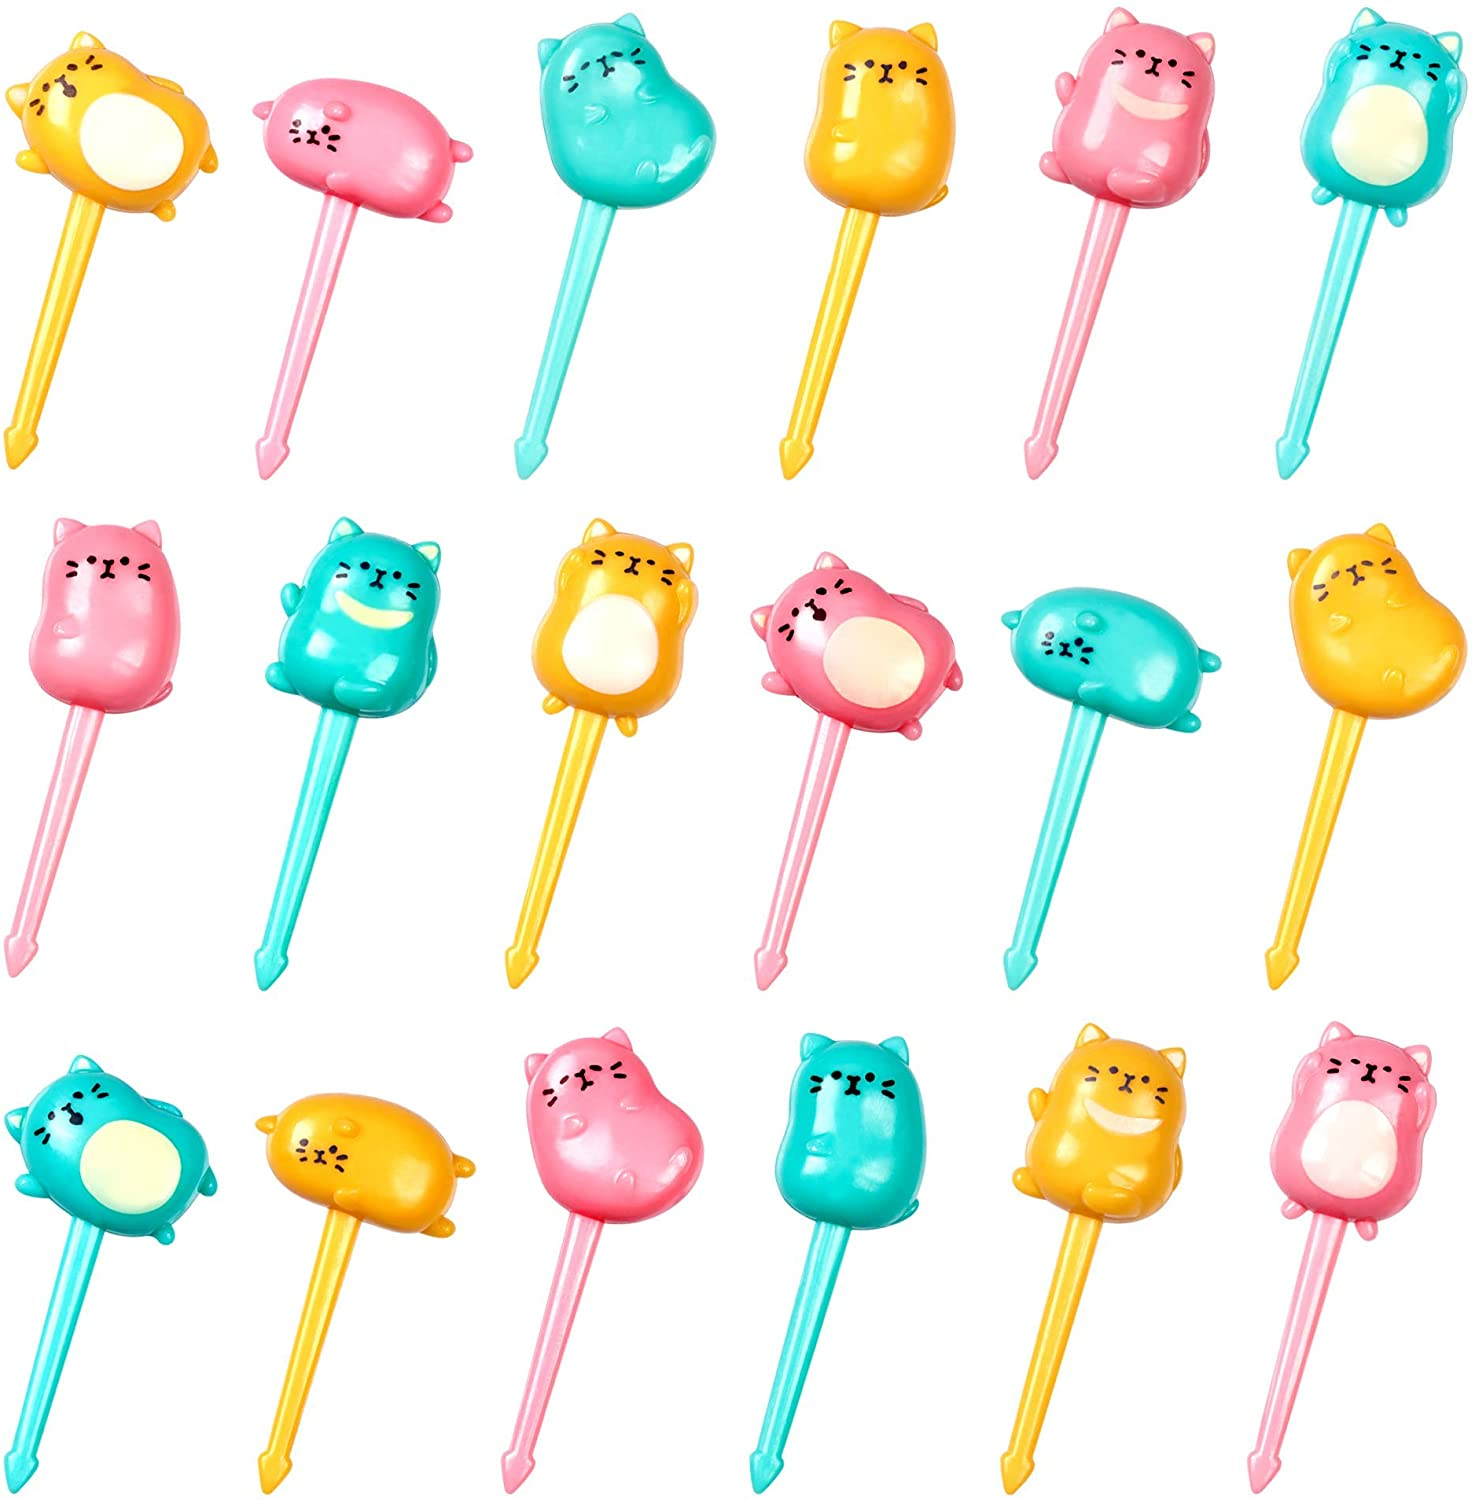 GET FRESH Animal Food Picks for Kids – 18-pcs Cat Food Picks for Toddlers Lunch Decoration – Cute CatBentoToothpicks for Children – Reusable Kids Foods Picks Tooth-picks Set for Bento Deco